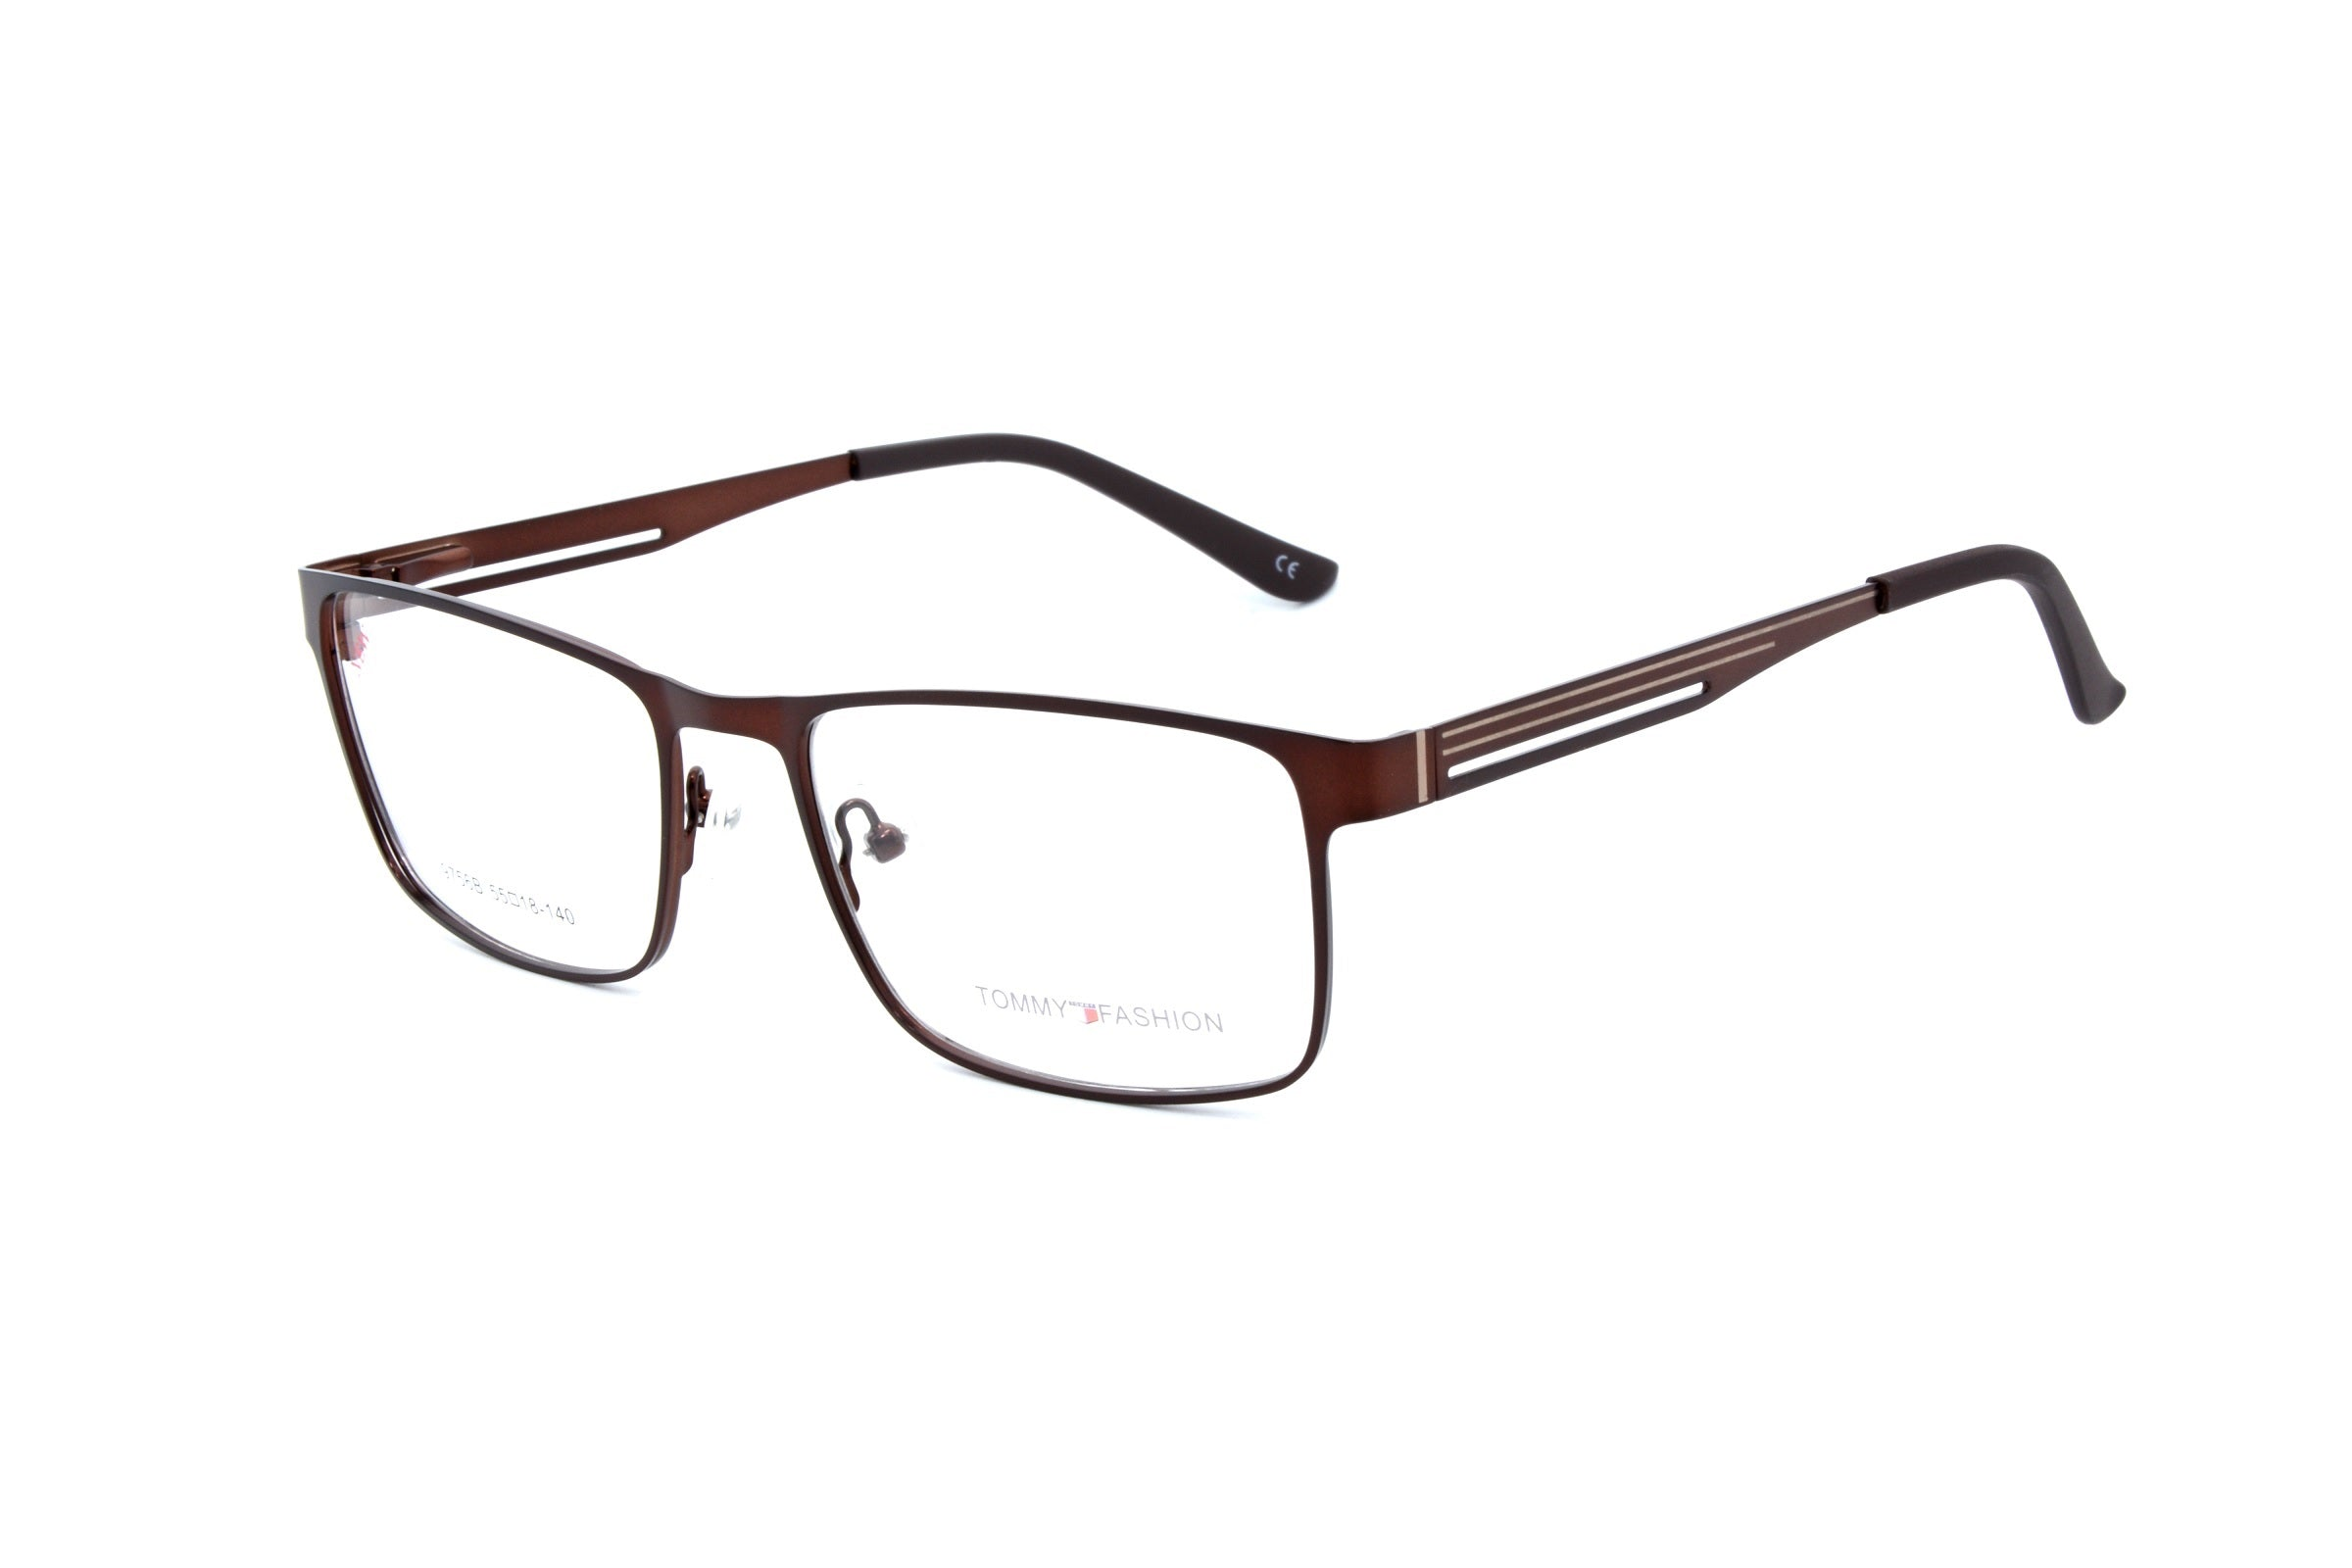 Tommy Fashion eyewear 9756B, C4 - Optics Trading